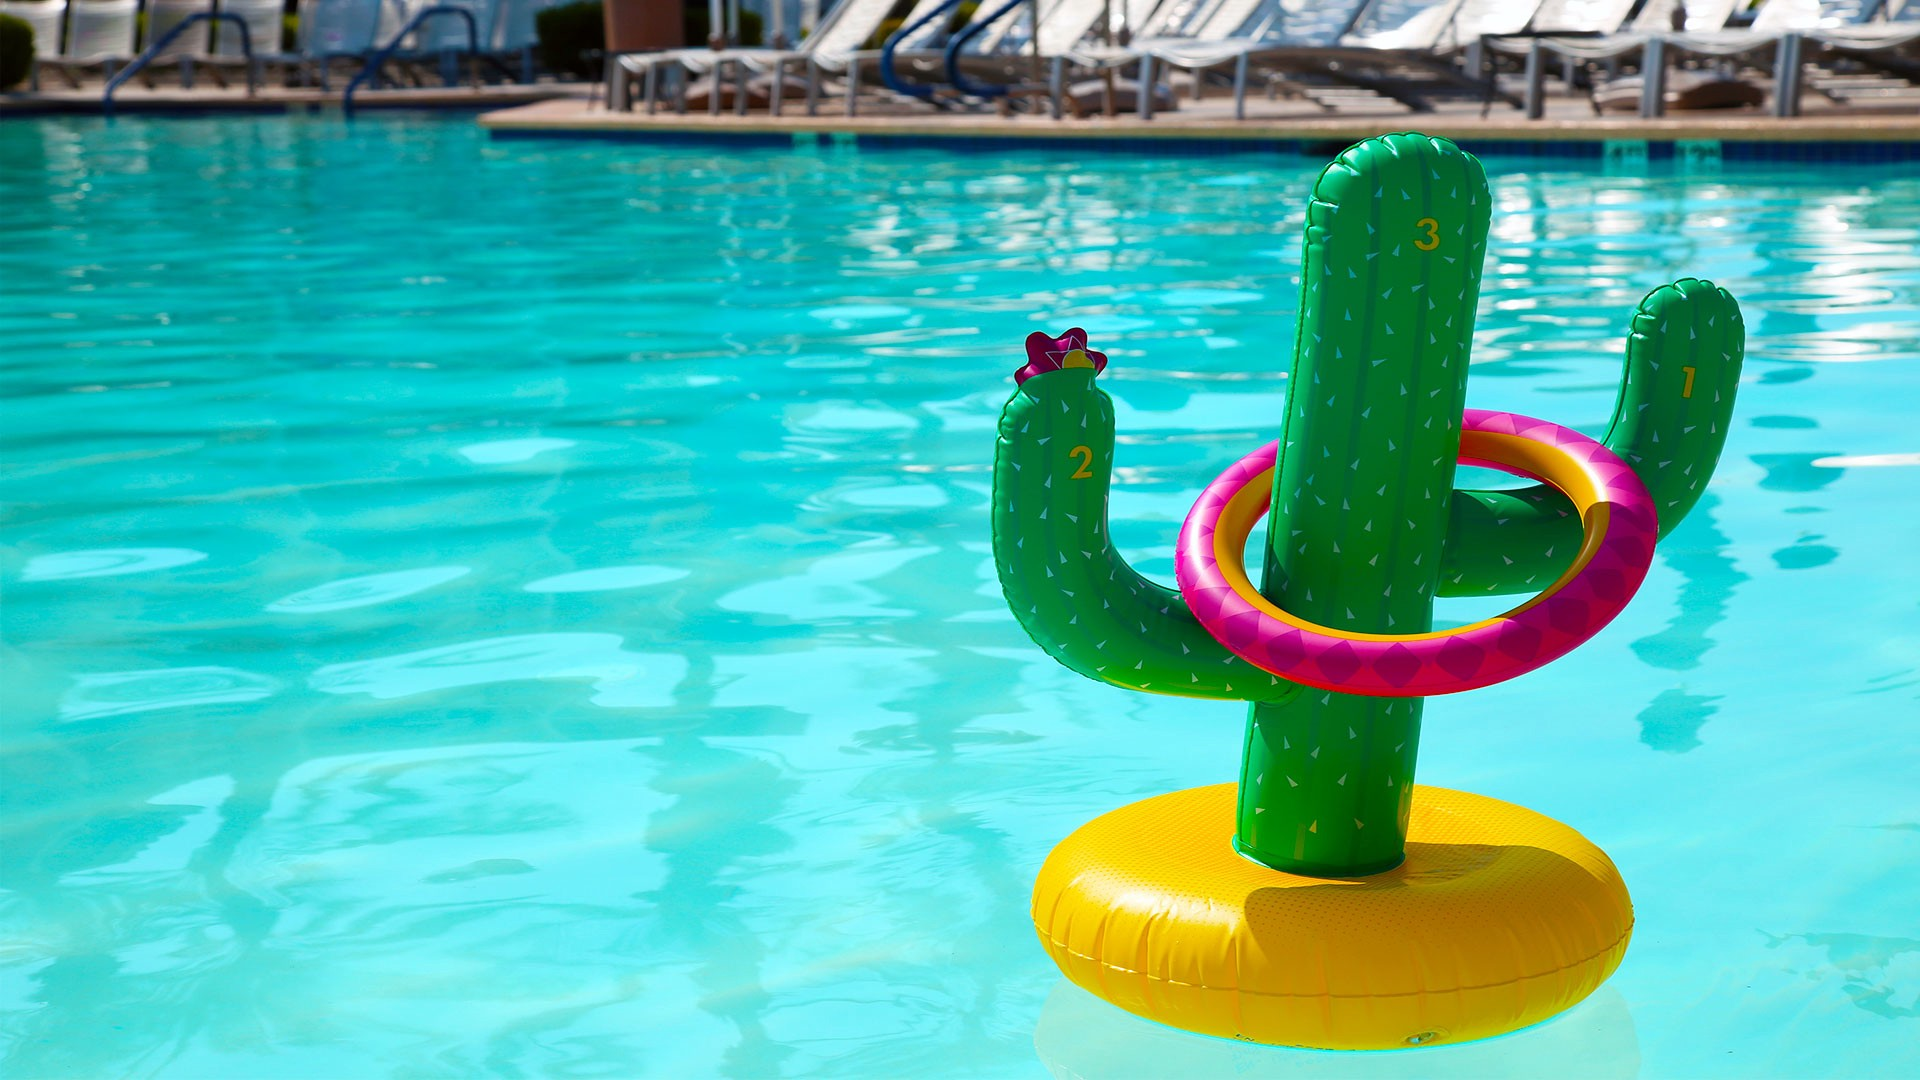 CRAZY POOL PARTY GAMES TO TRY THIS SUMMER! - Partyvapours ...